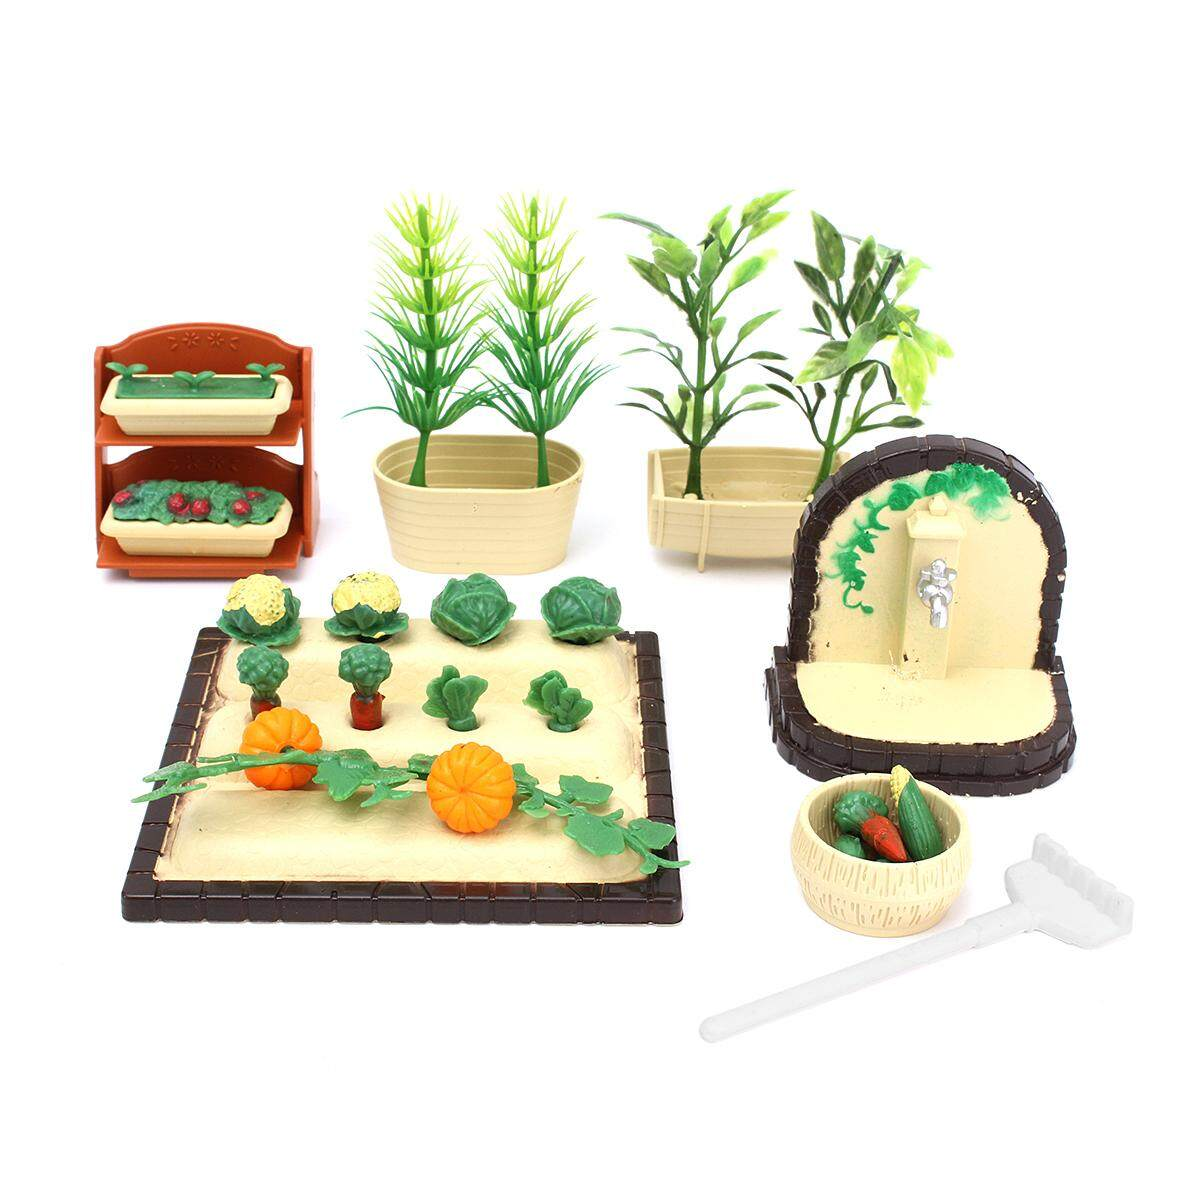 Miniature Gardening Vegetables DollHouse Furniture Outdoor Accessory Play Set - intl